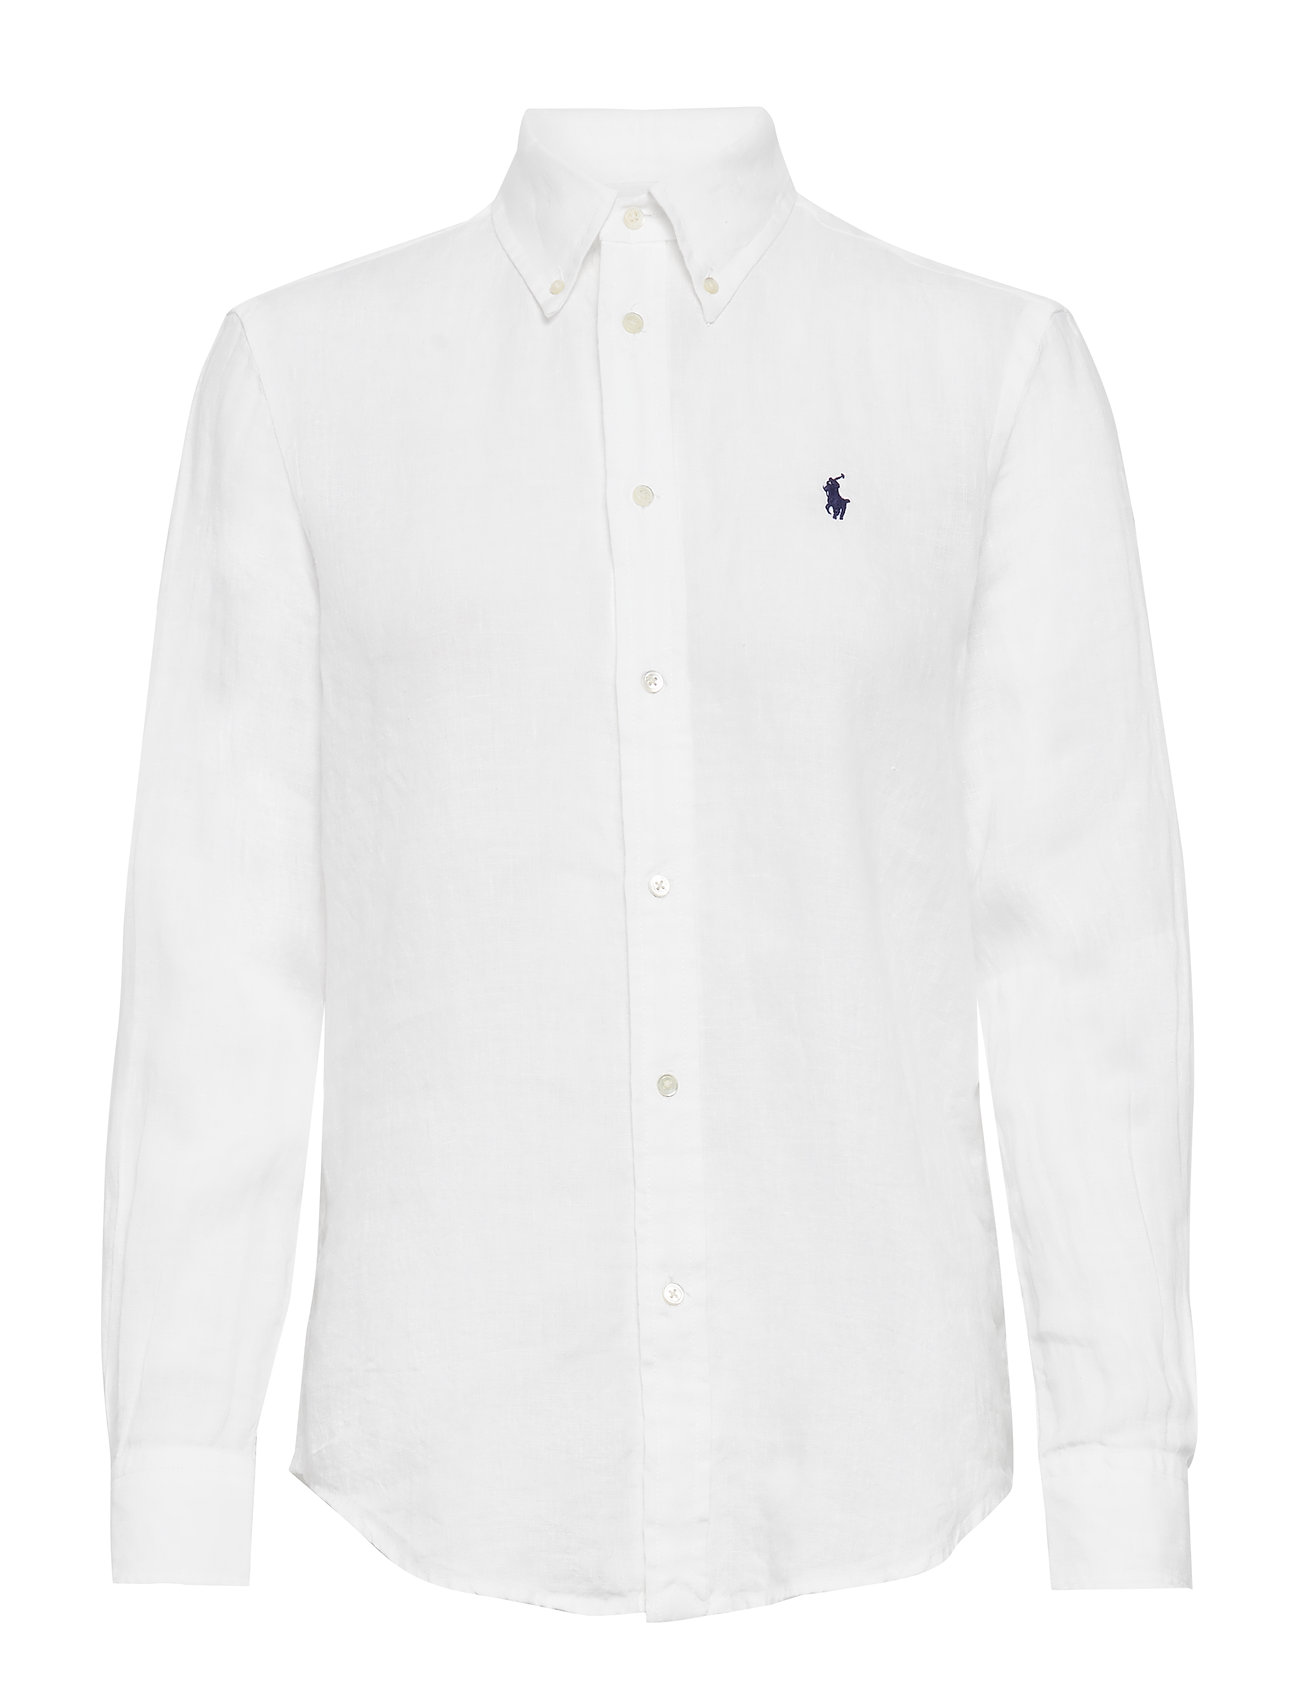 Polo Ralph Lauren Relaxed Fit Linen Shirt - WHITE